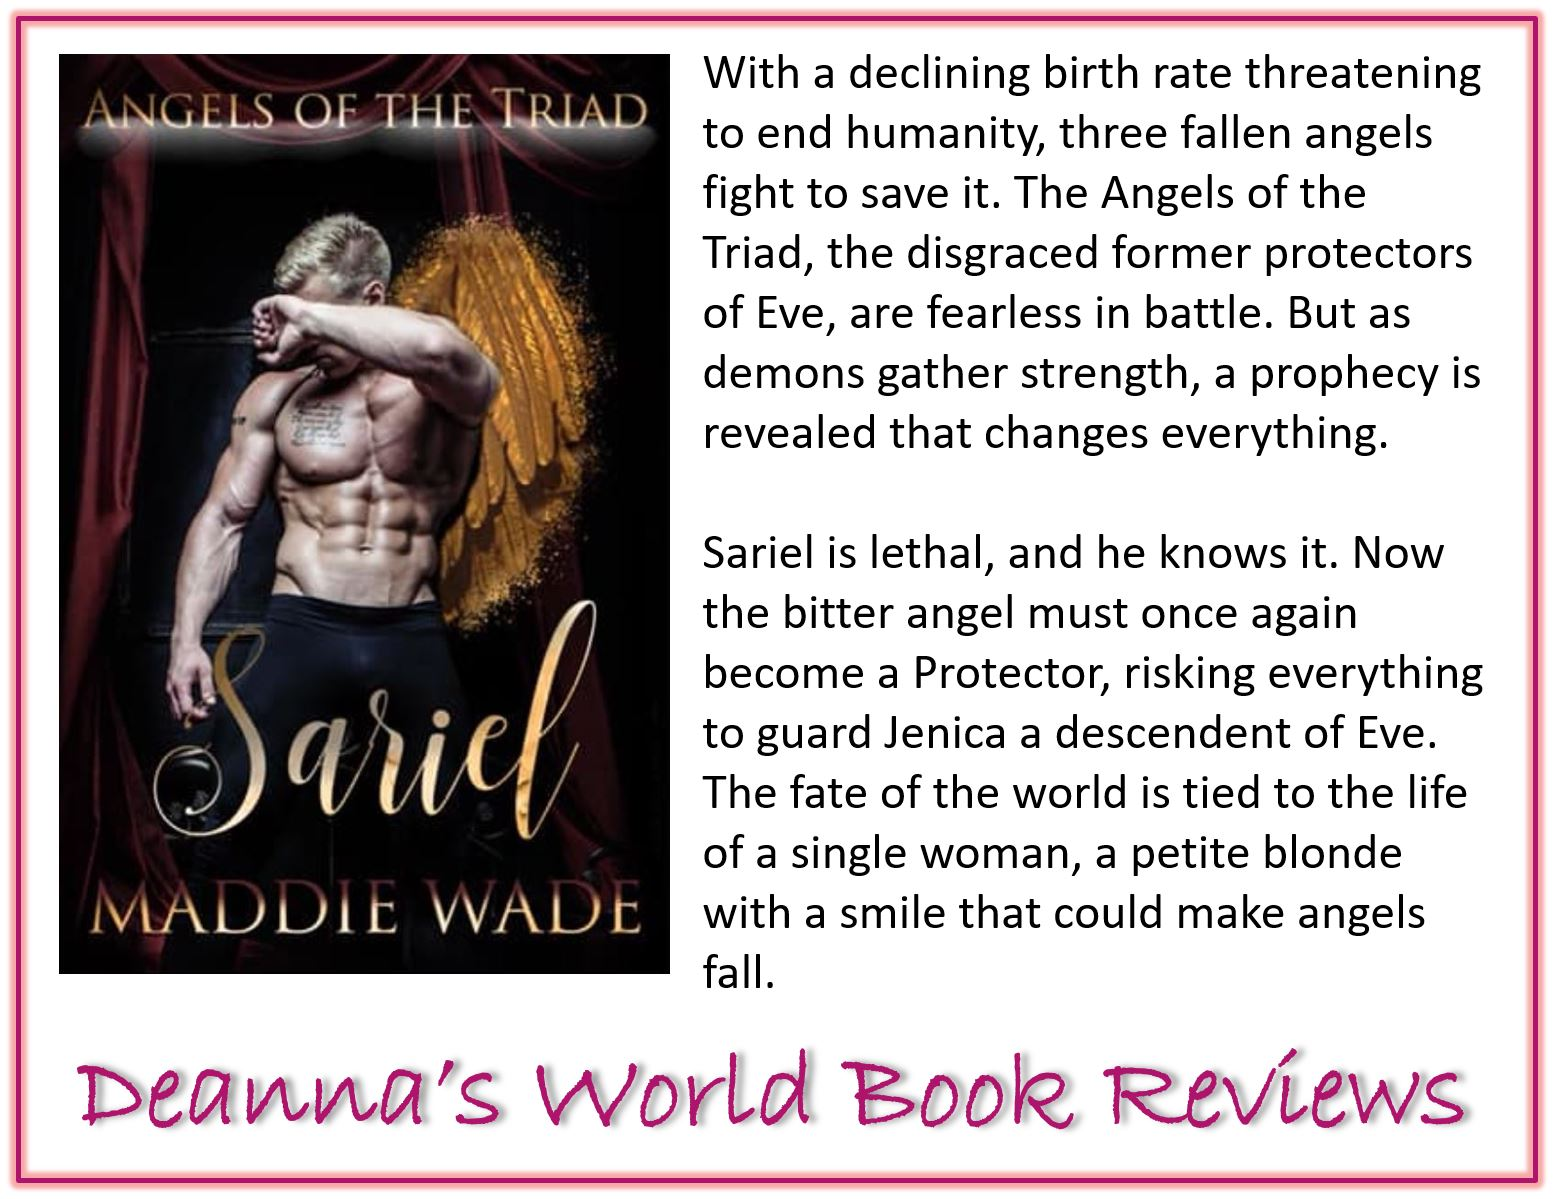 Angels of the Triad Sariel by Maddie Wade blurb